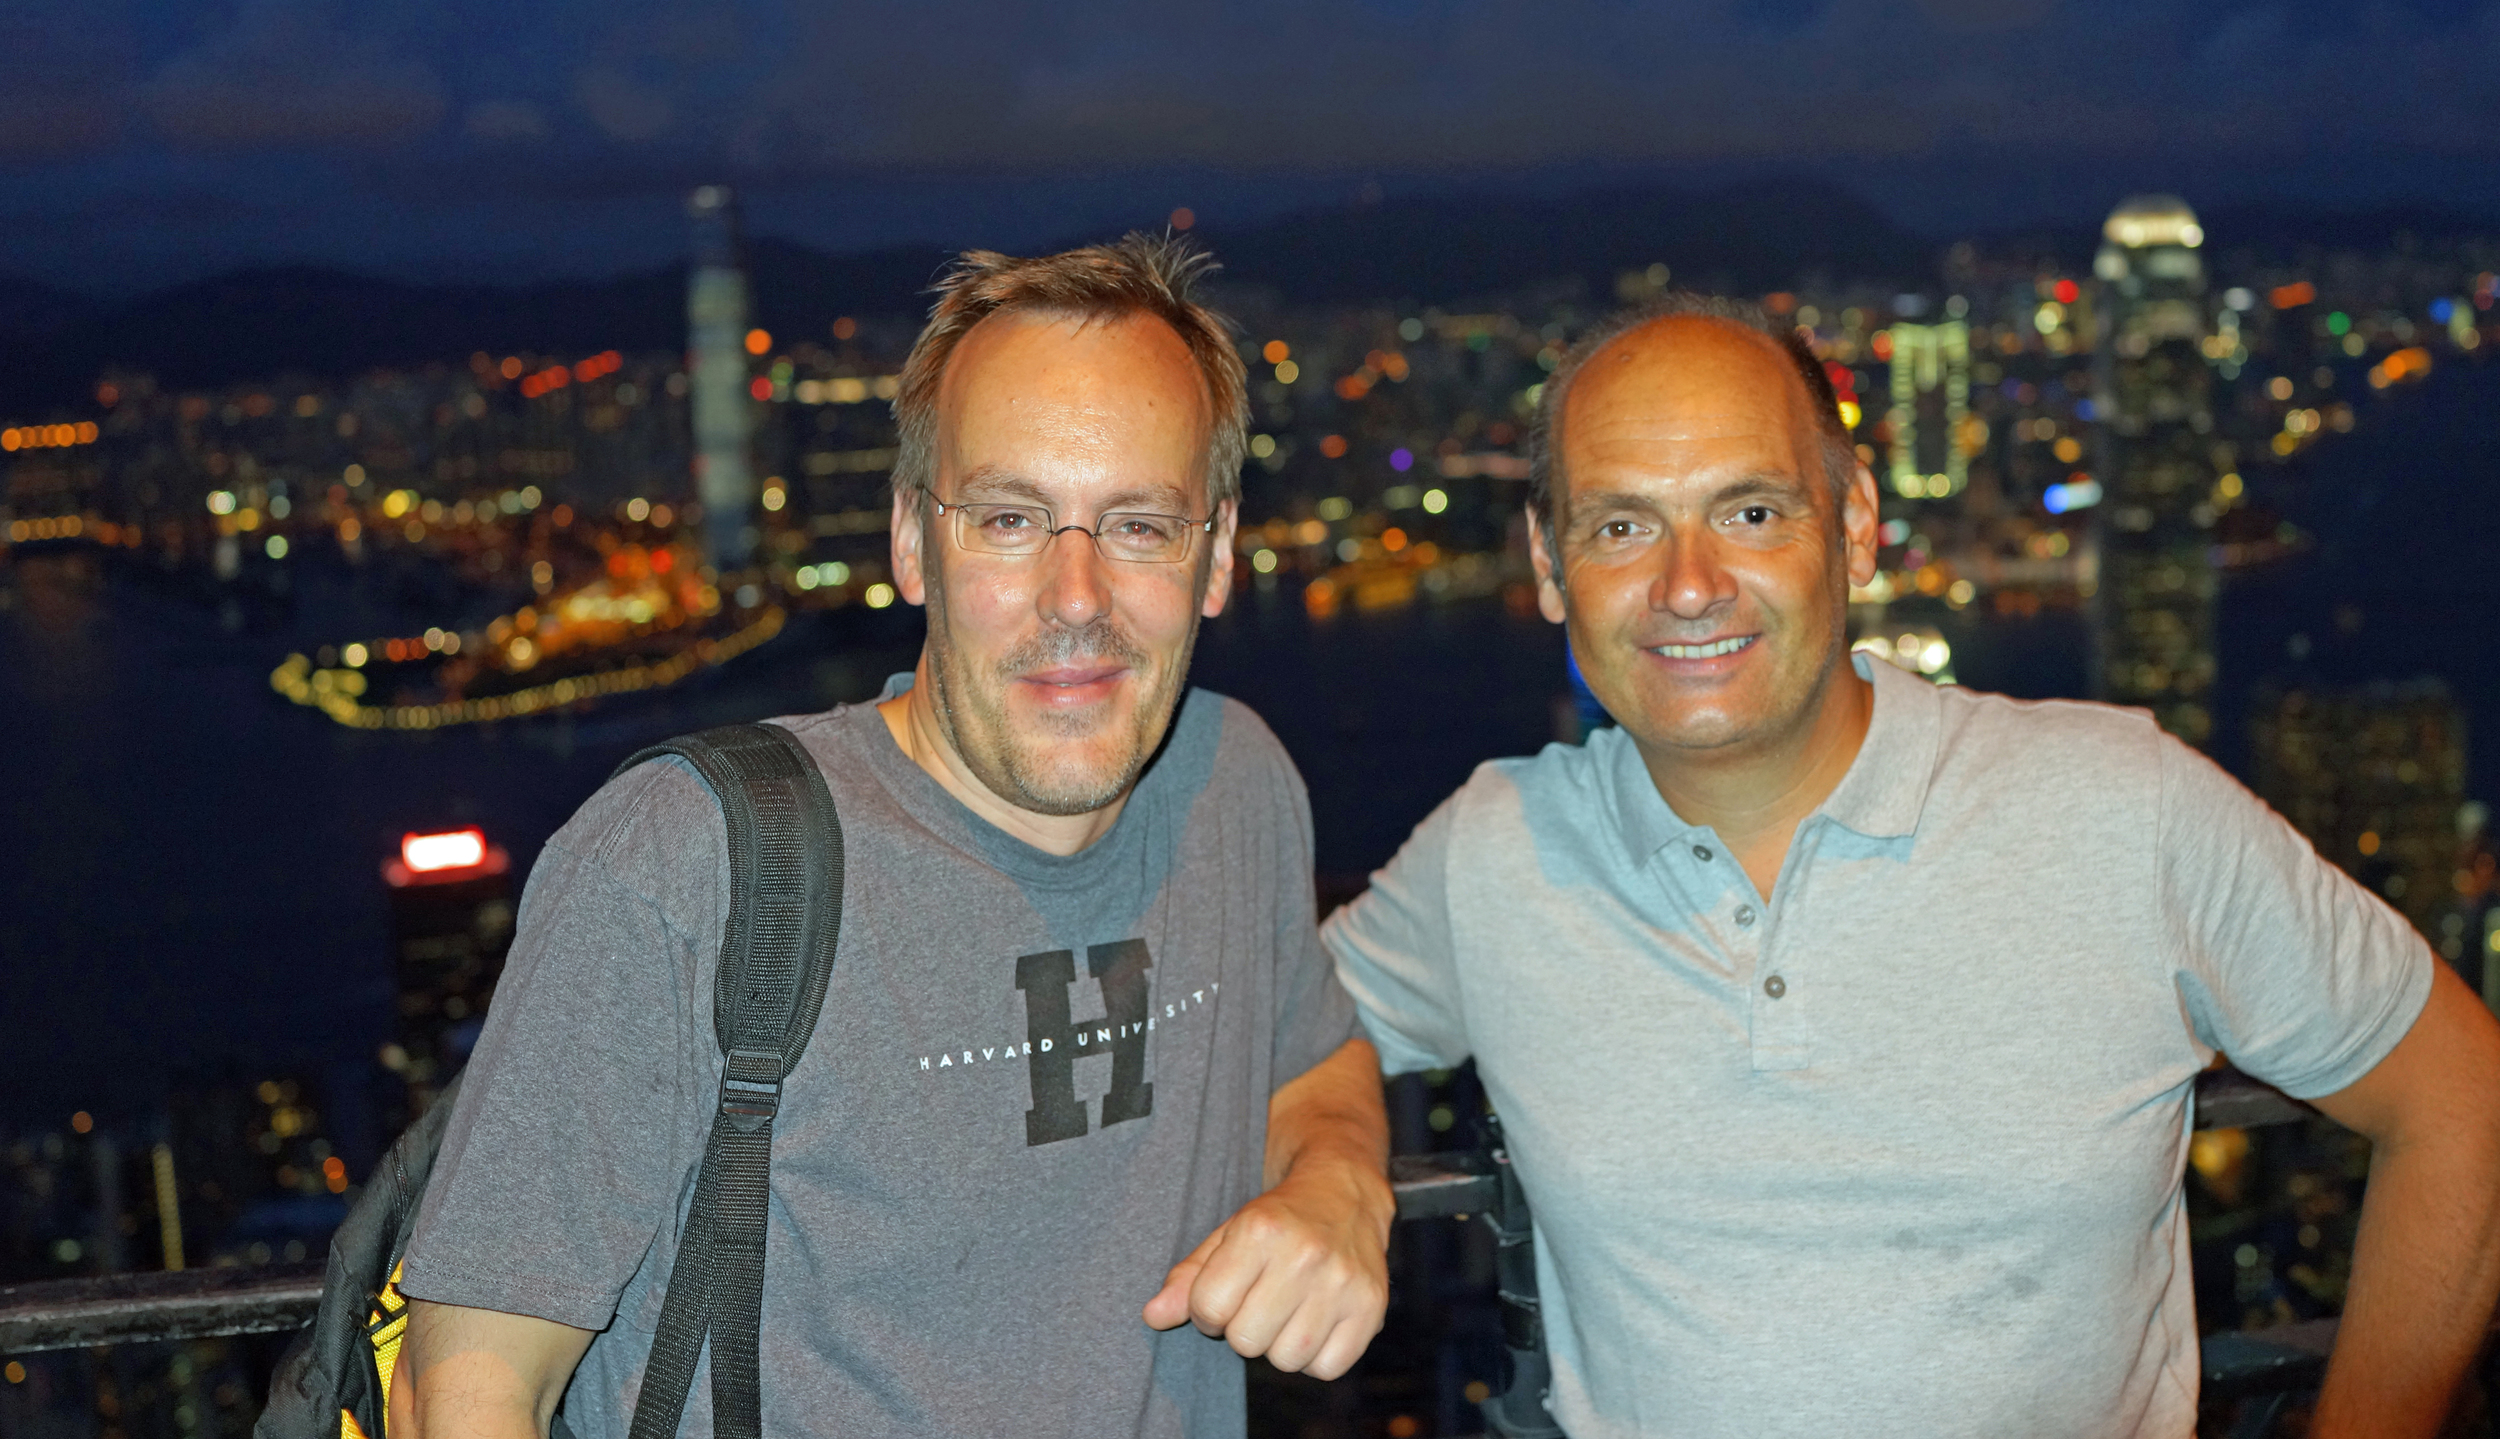 Meet Frank and George enjoying the staggering night view from my spot at the Peak.